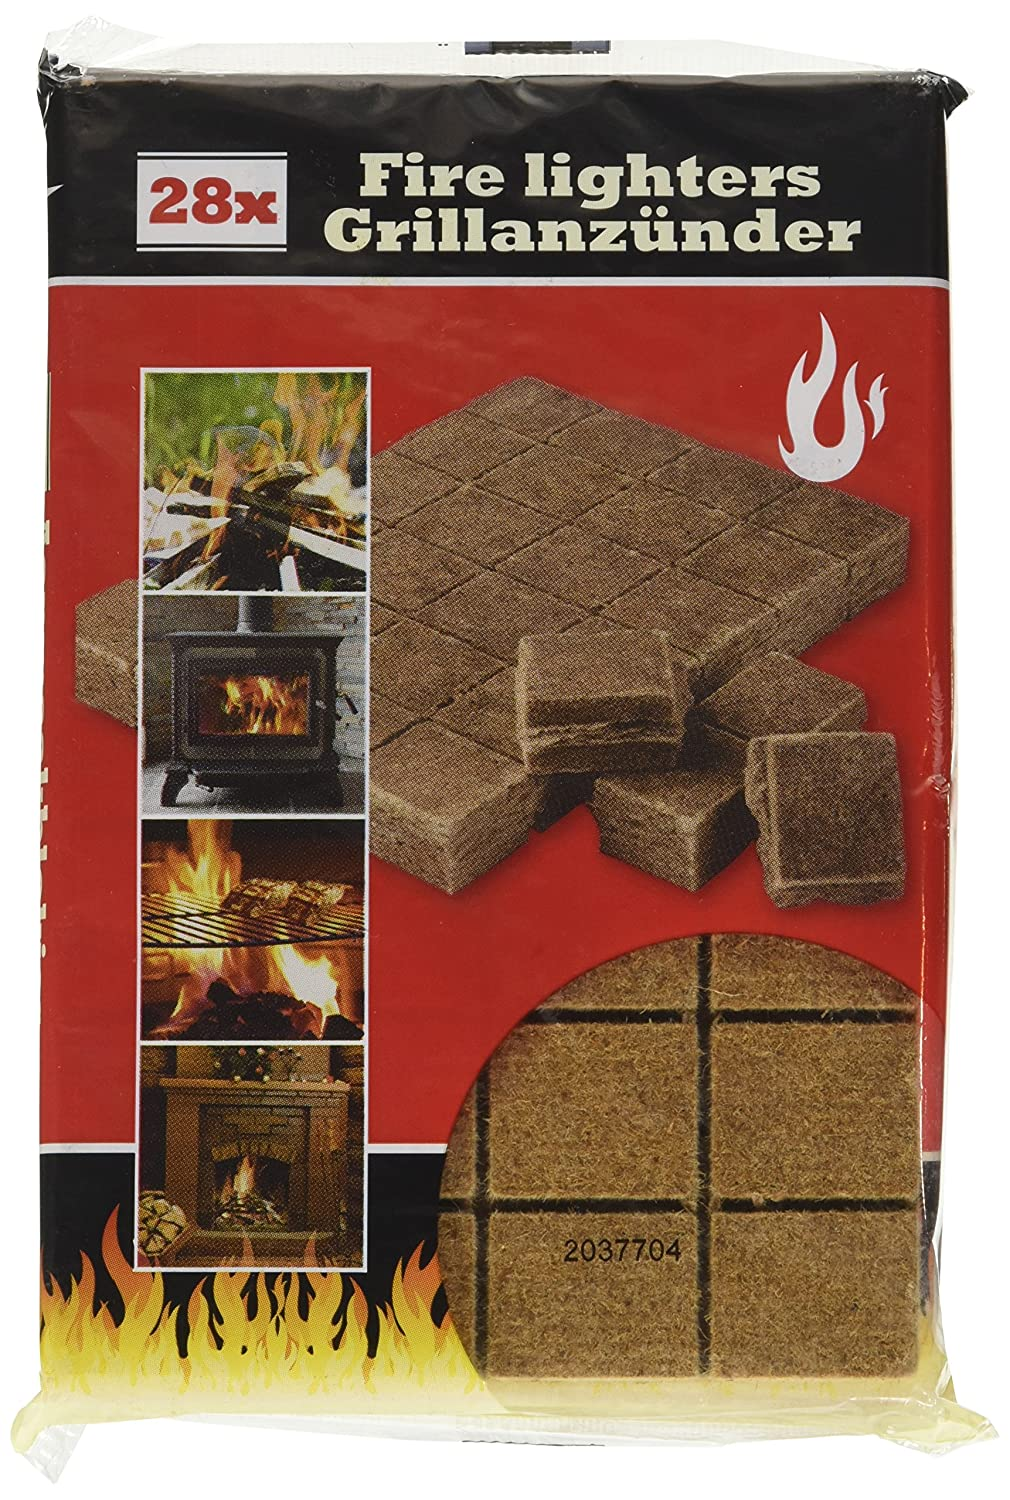 BBQ Collection 871125232600 Lighter Cubes For Grill, Fireplace and Stove 28 Pack of 12 x 1.7 mm x 18.5 cm Red